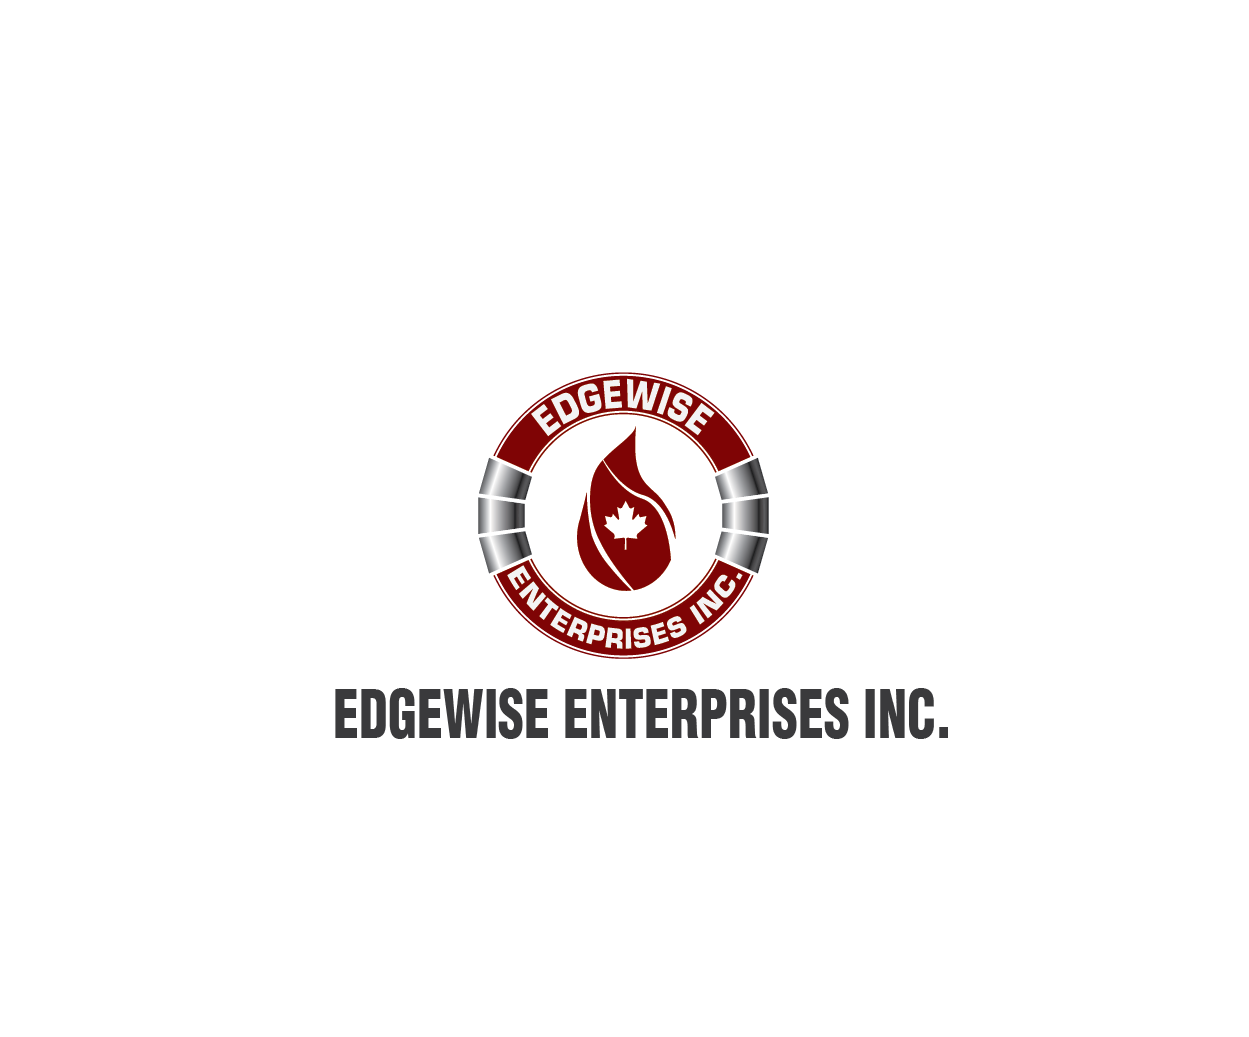 Logo Design by iwyn - Entry No. 64 in the Logo Design Contest New Logo Design for Edgewise Enterprises Inc..